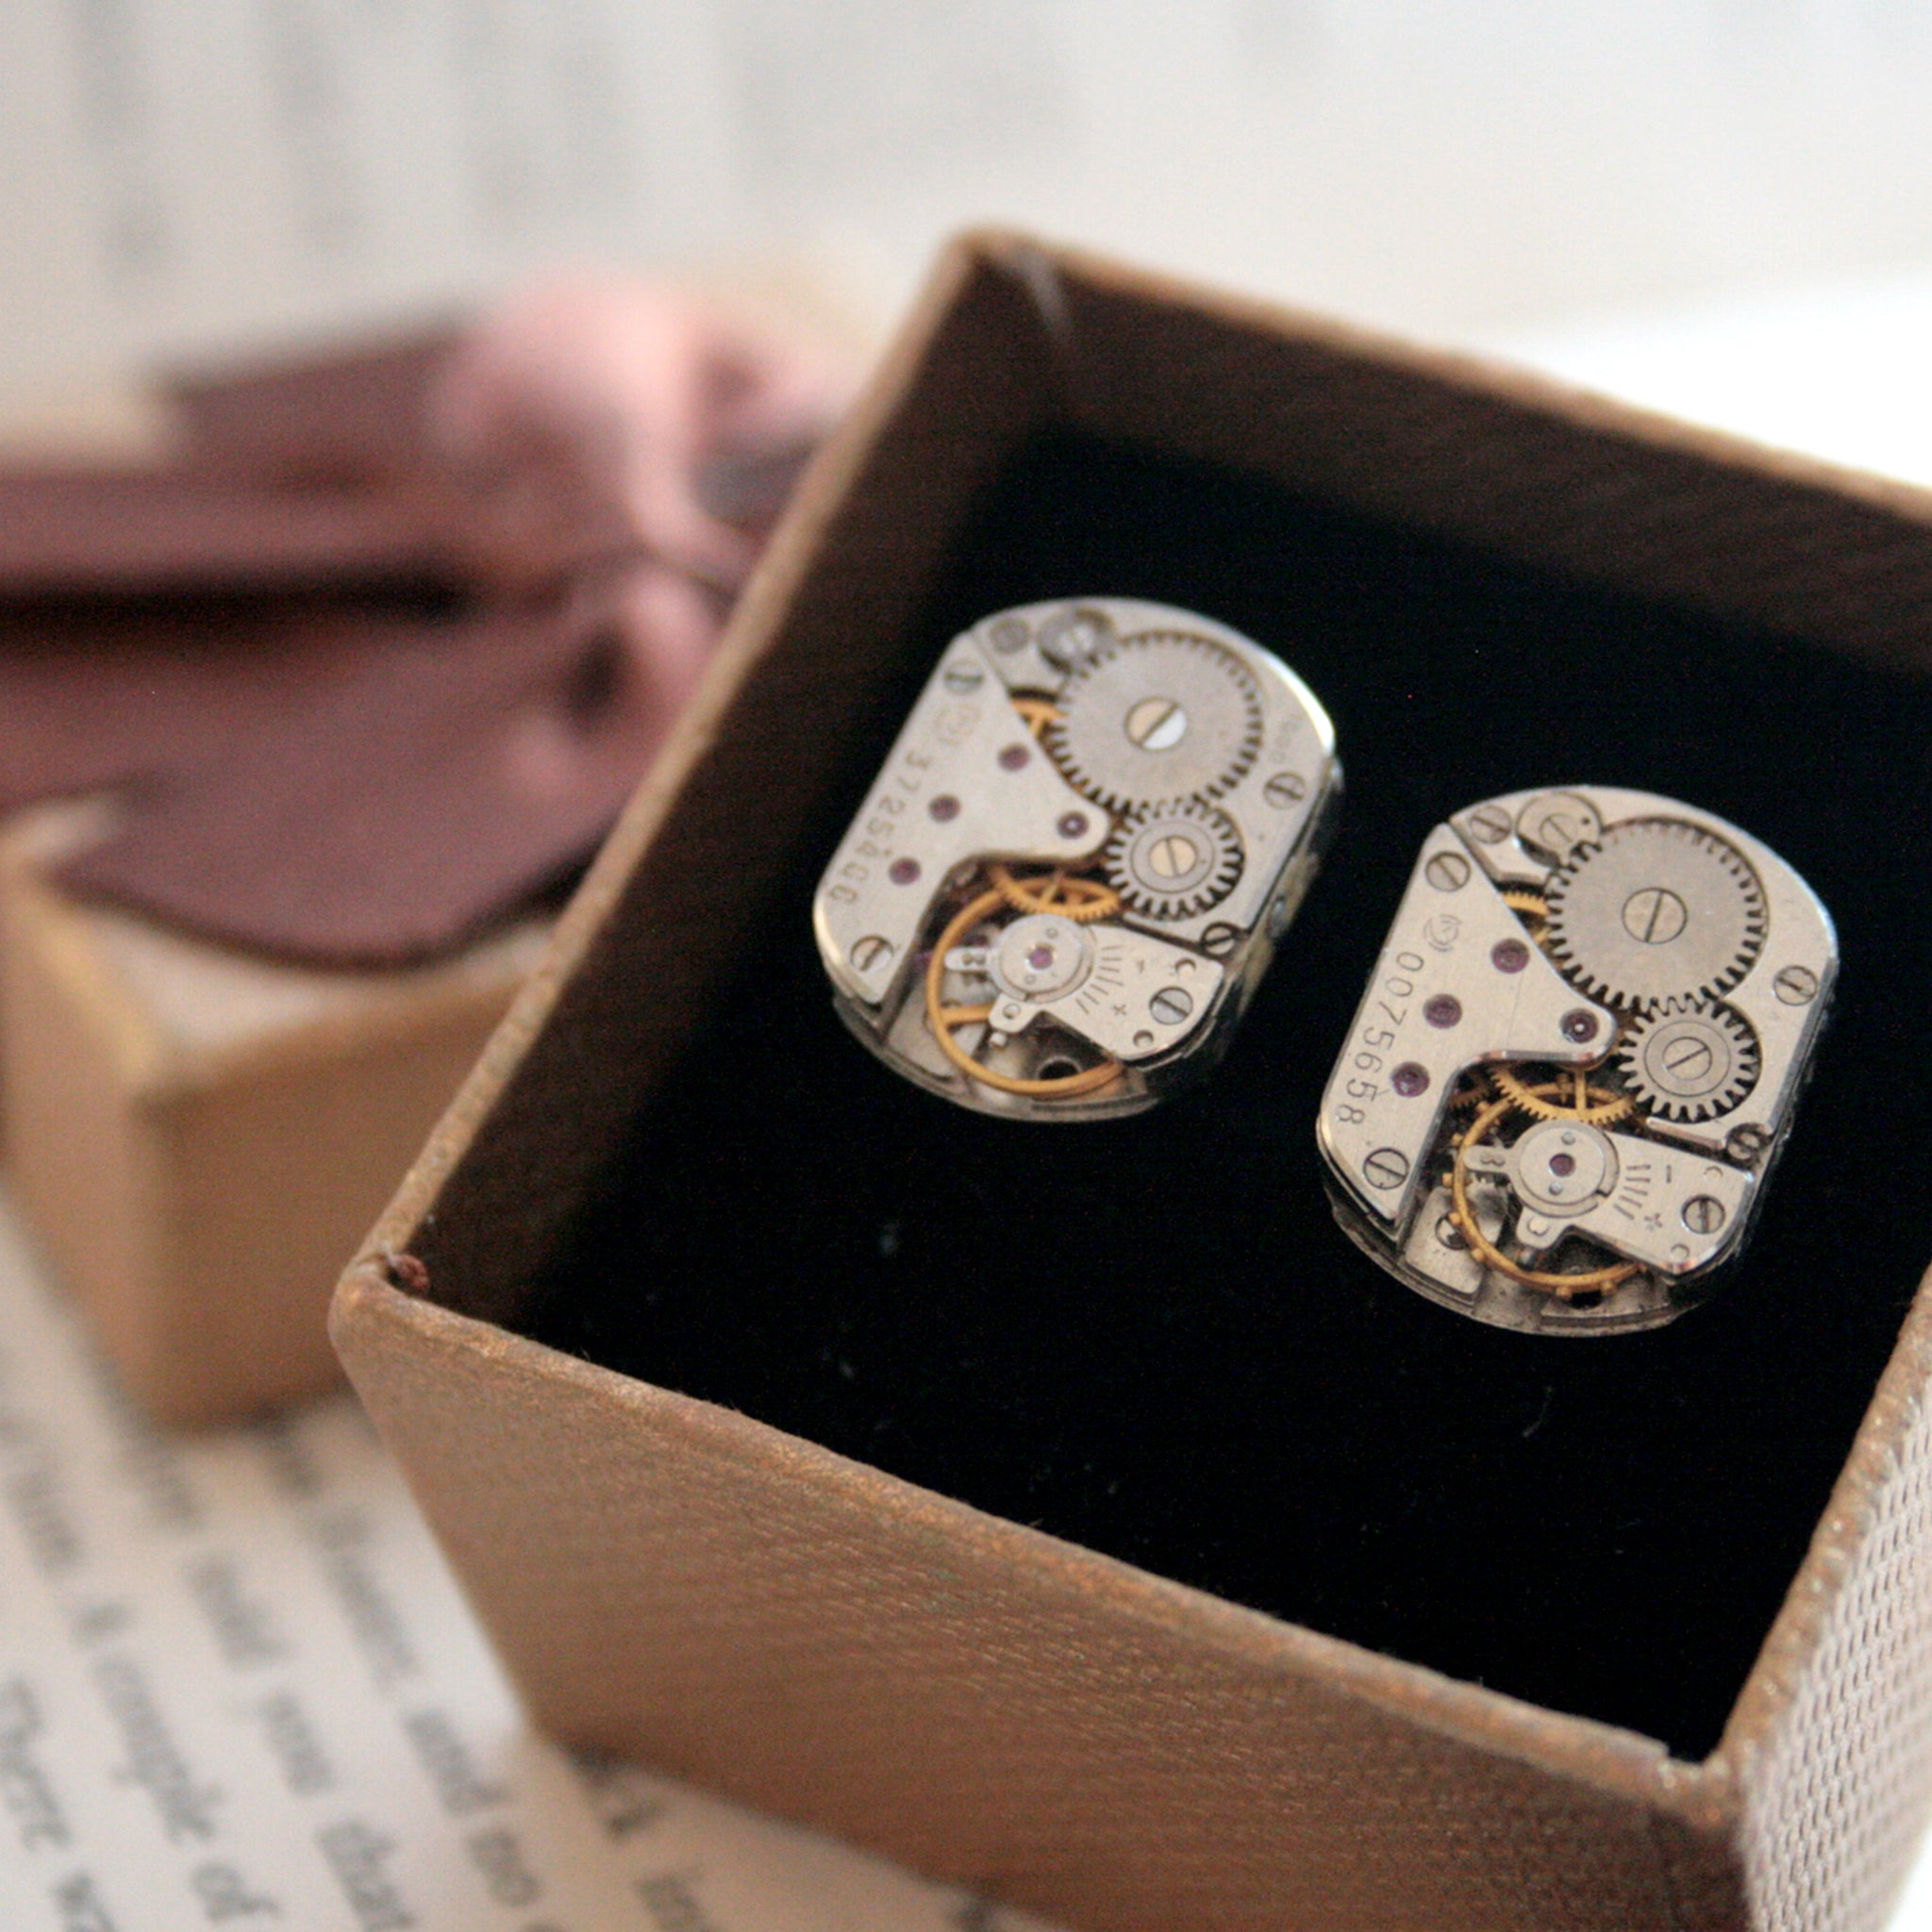 Steampunk Cufflinks featuring antique watch movements in a gift box